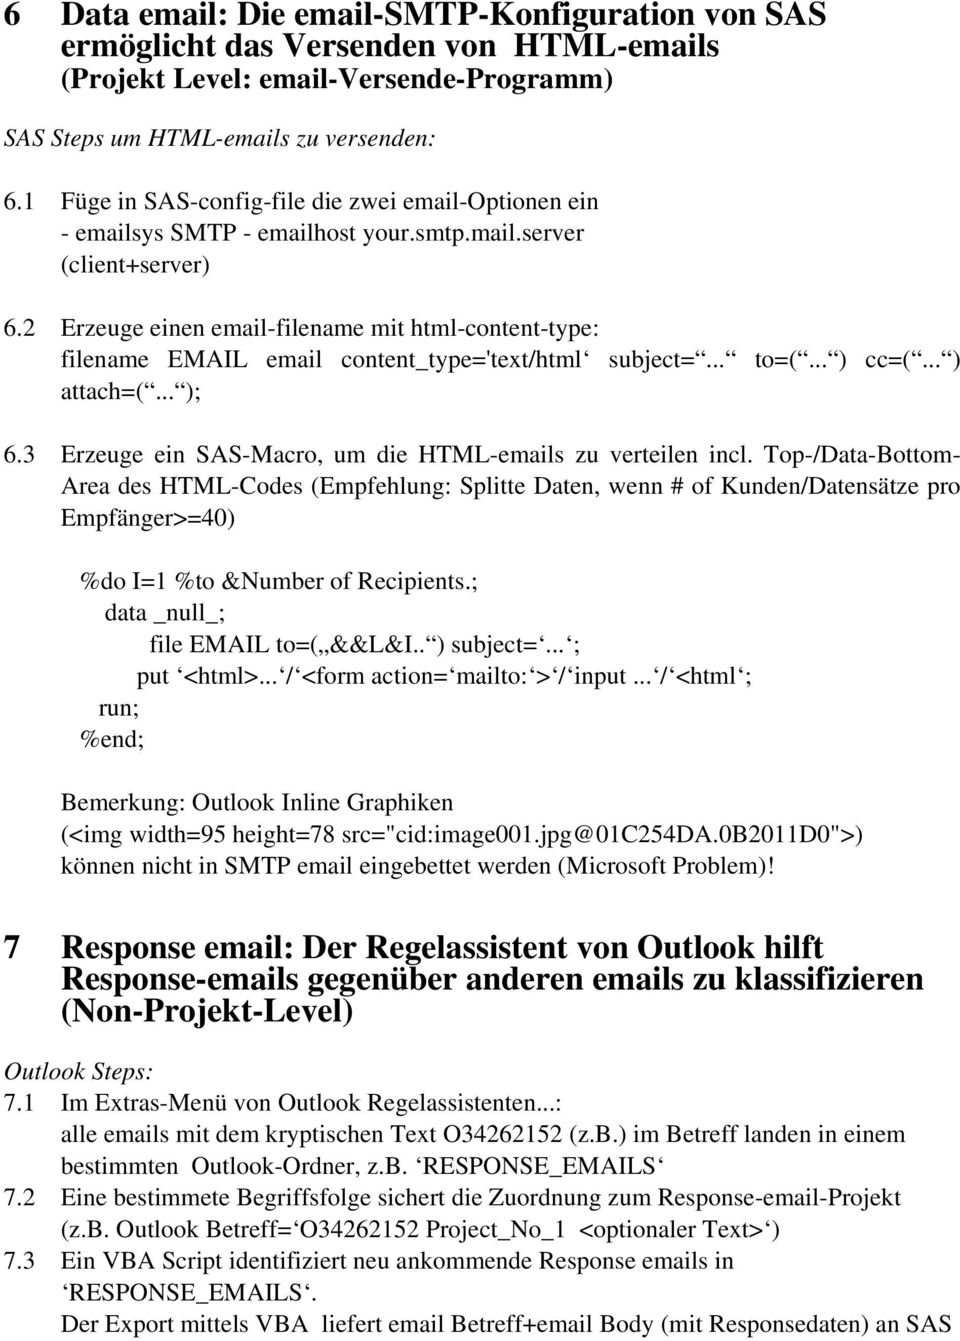 2 Erzeuge einen email-filename mit html-content-type: filename EMAIL email content_type='text/html subject=... to=(... ) cc=(... ) attach=(... ); 6.